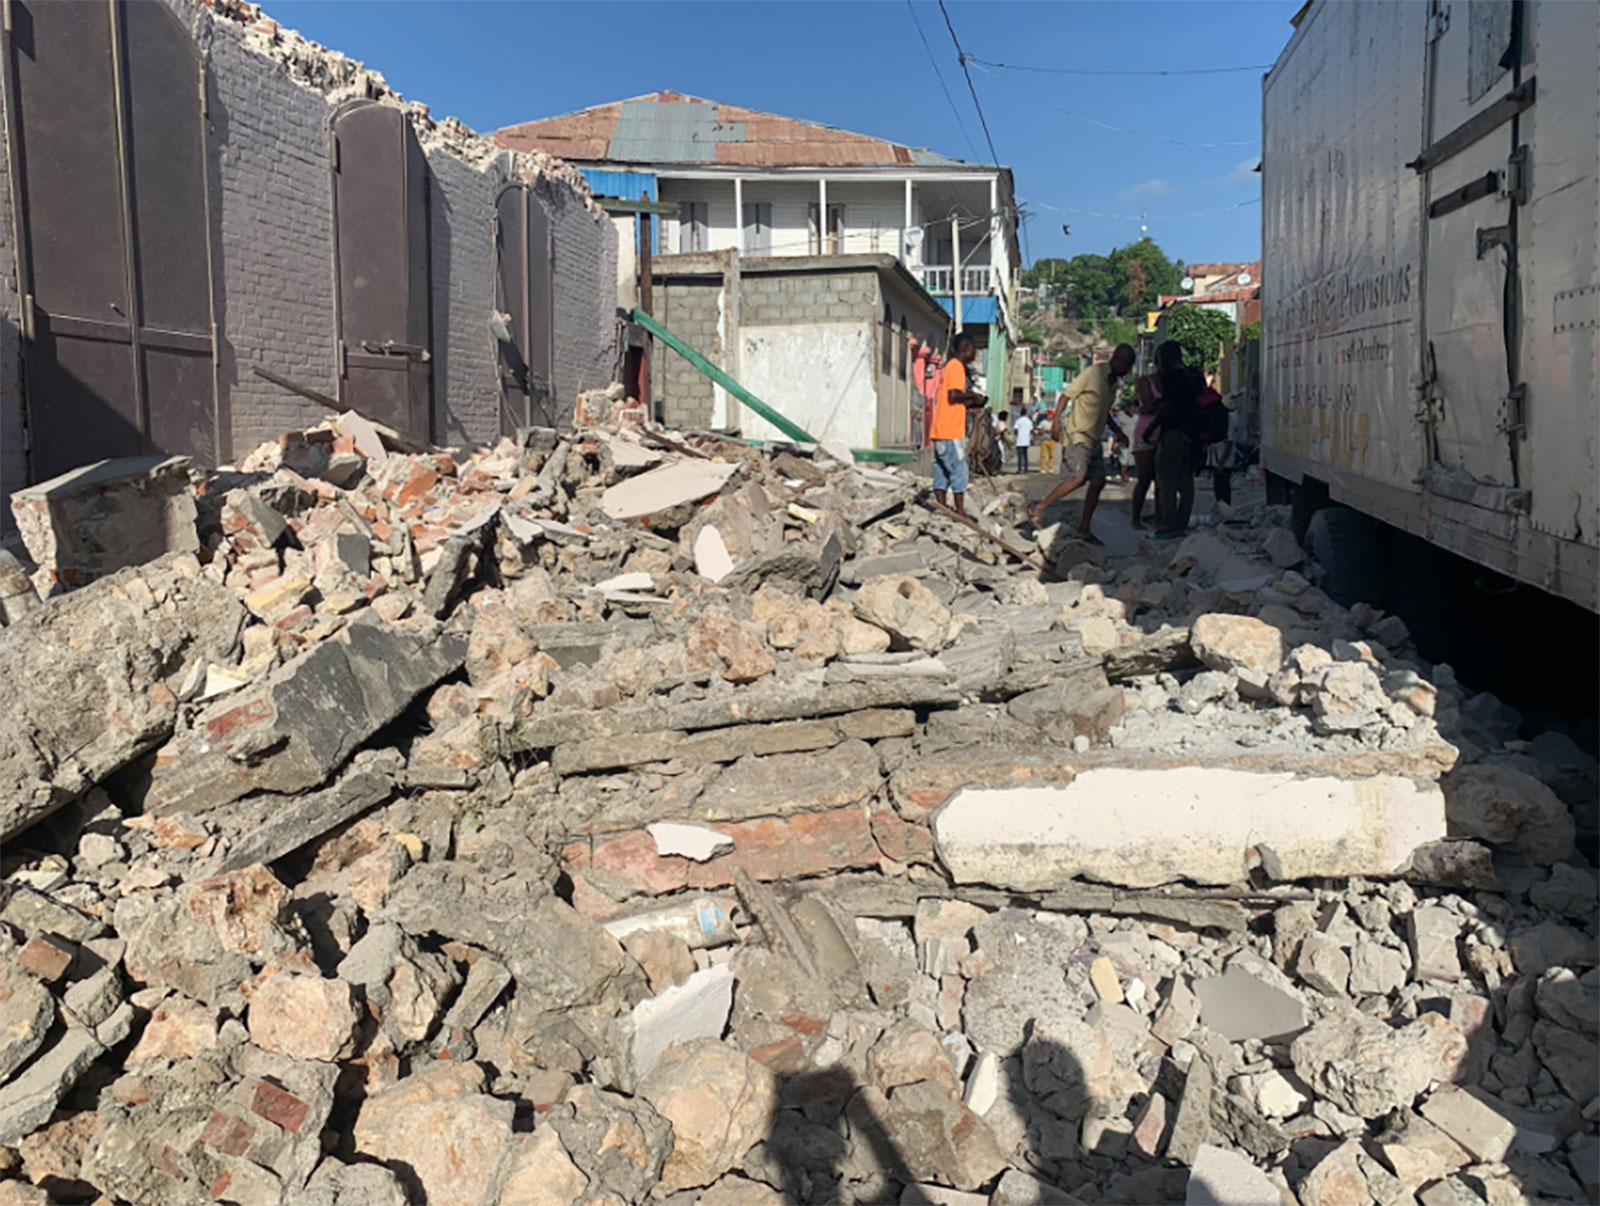 Rubble in Les Cayes, Haiti, is seen on August 14.